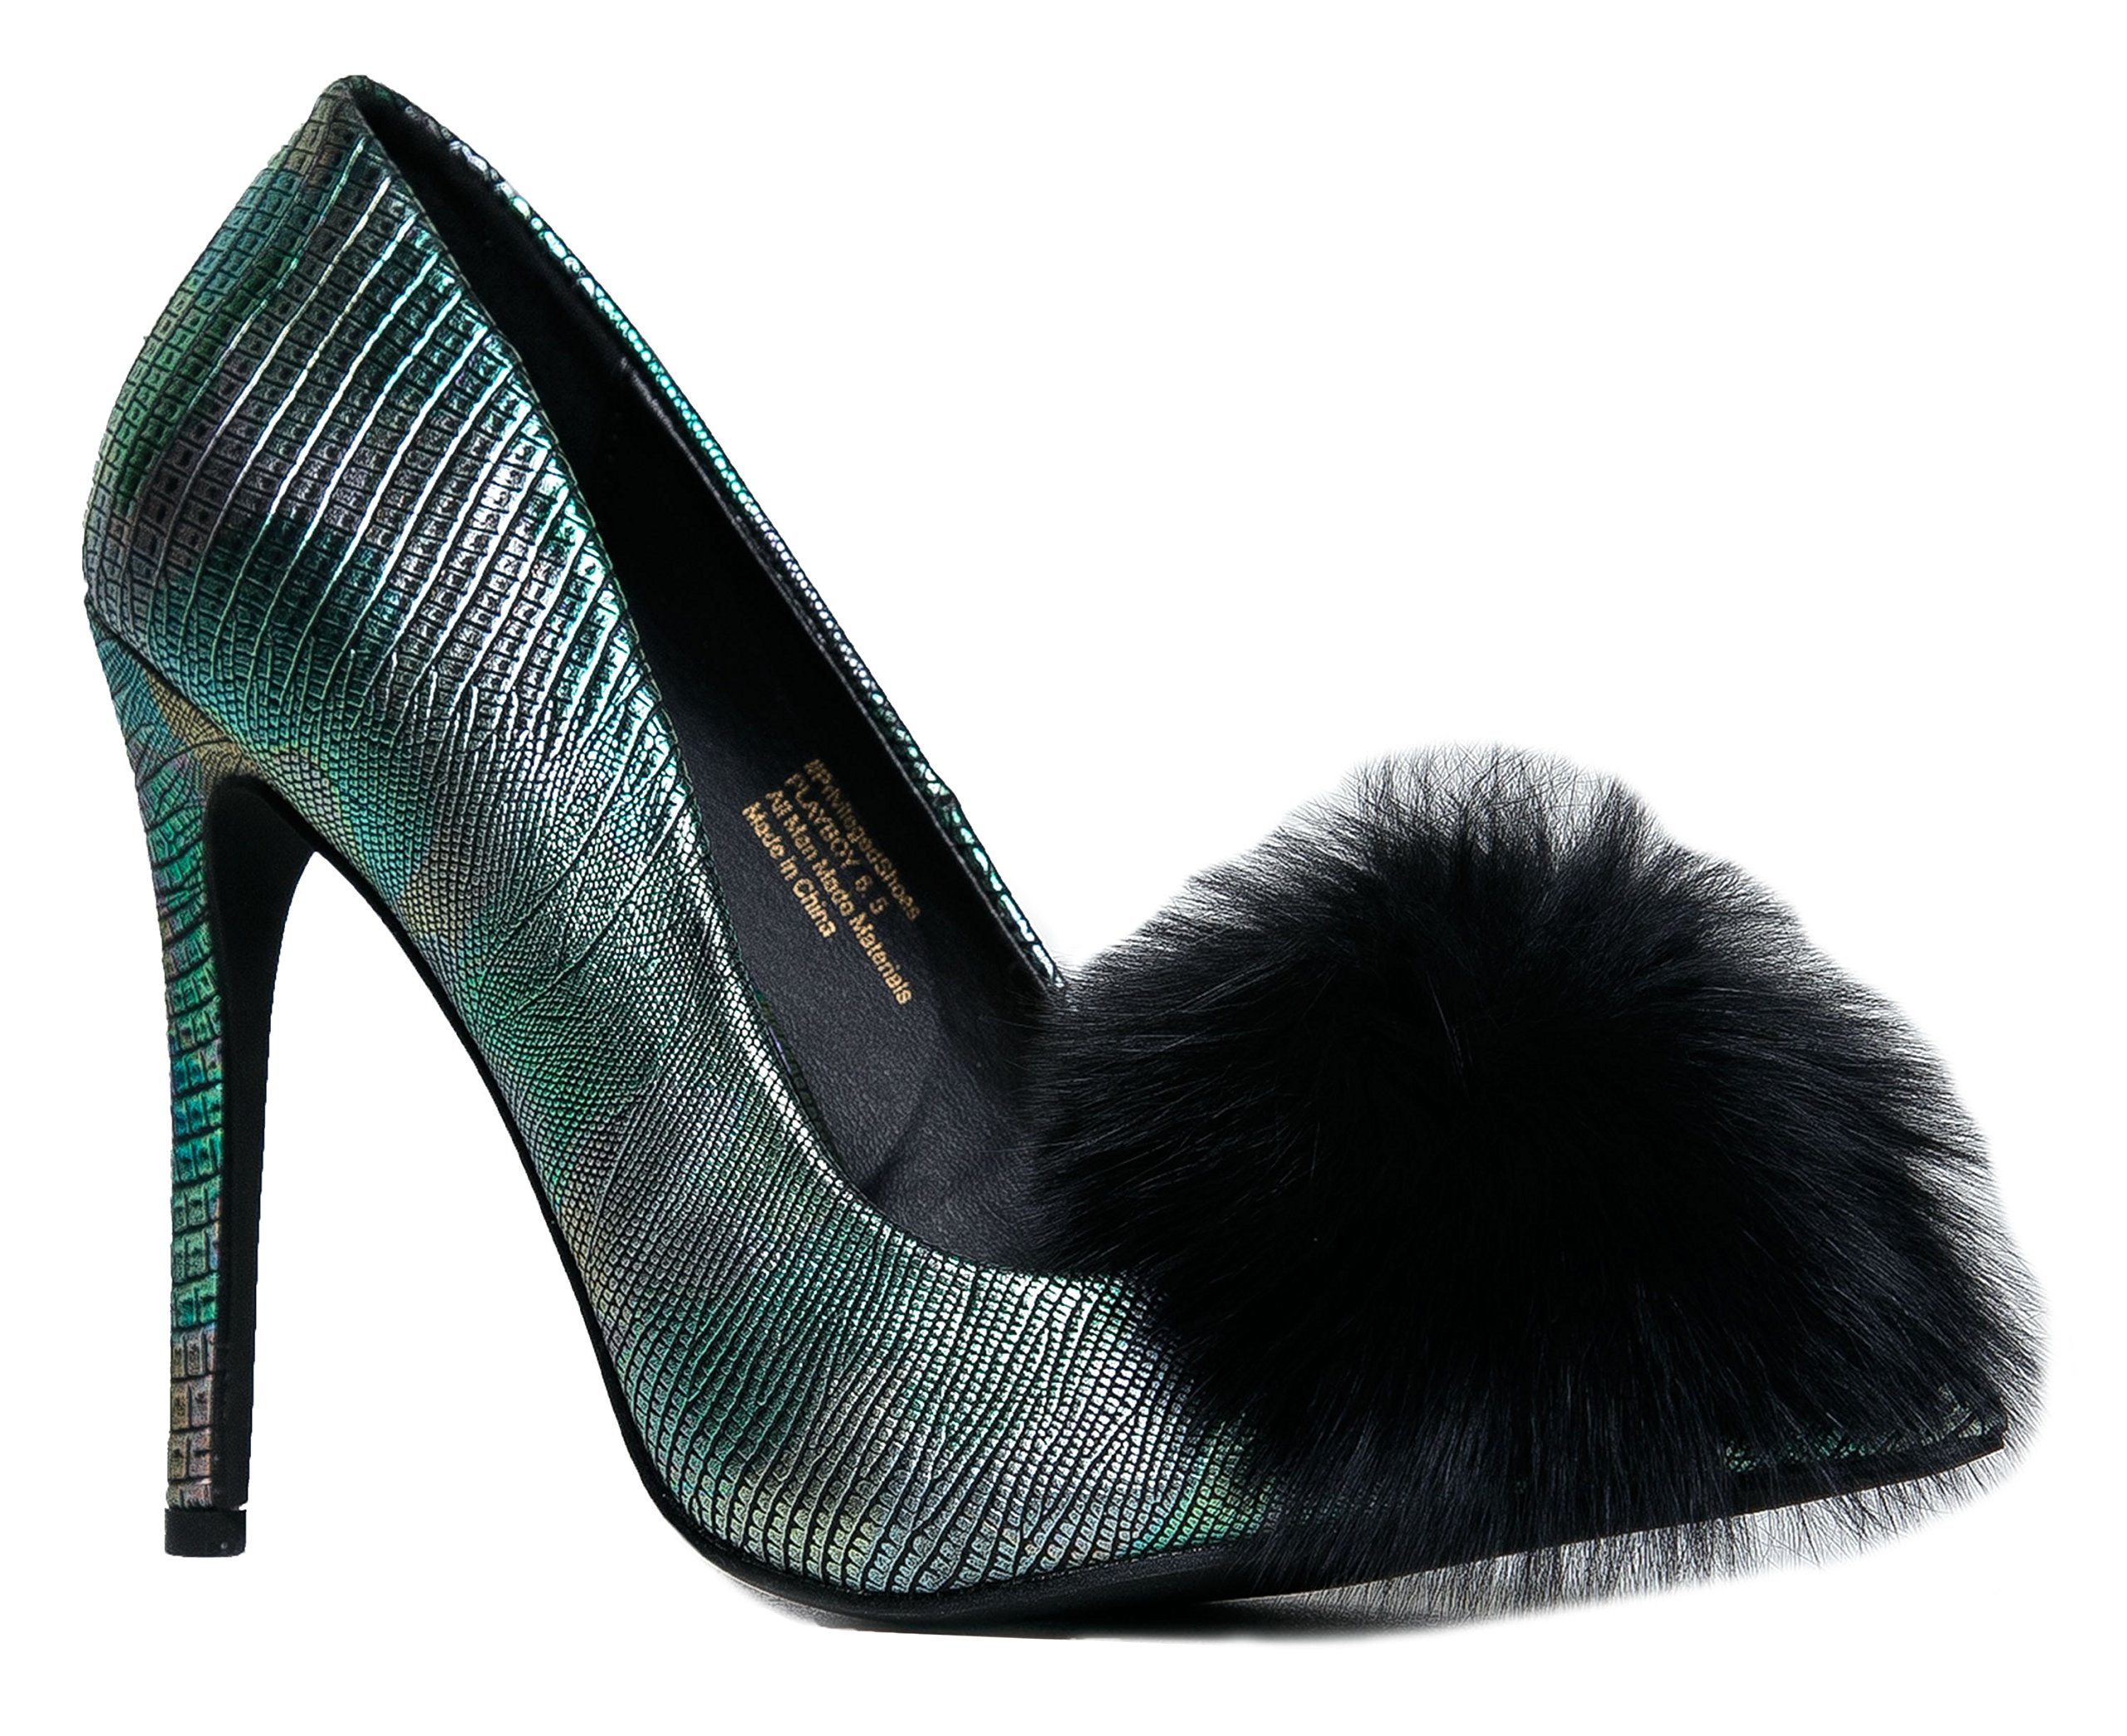 PRIVILEGED PLAYBOY Women's Pointed Toe High Heel Pump - Shimmer Metallic Faux Reptile Snake Pom Pom Fashion - Party Hot Sexy Event Shoe 6.5 by Privileged